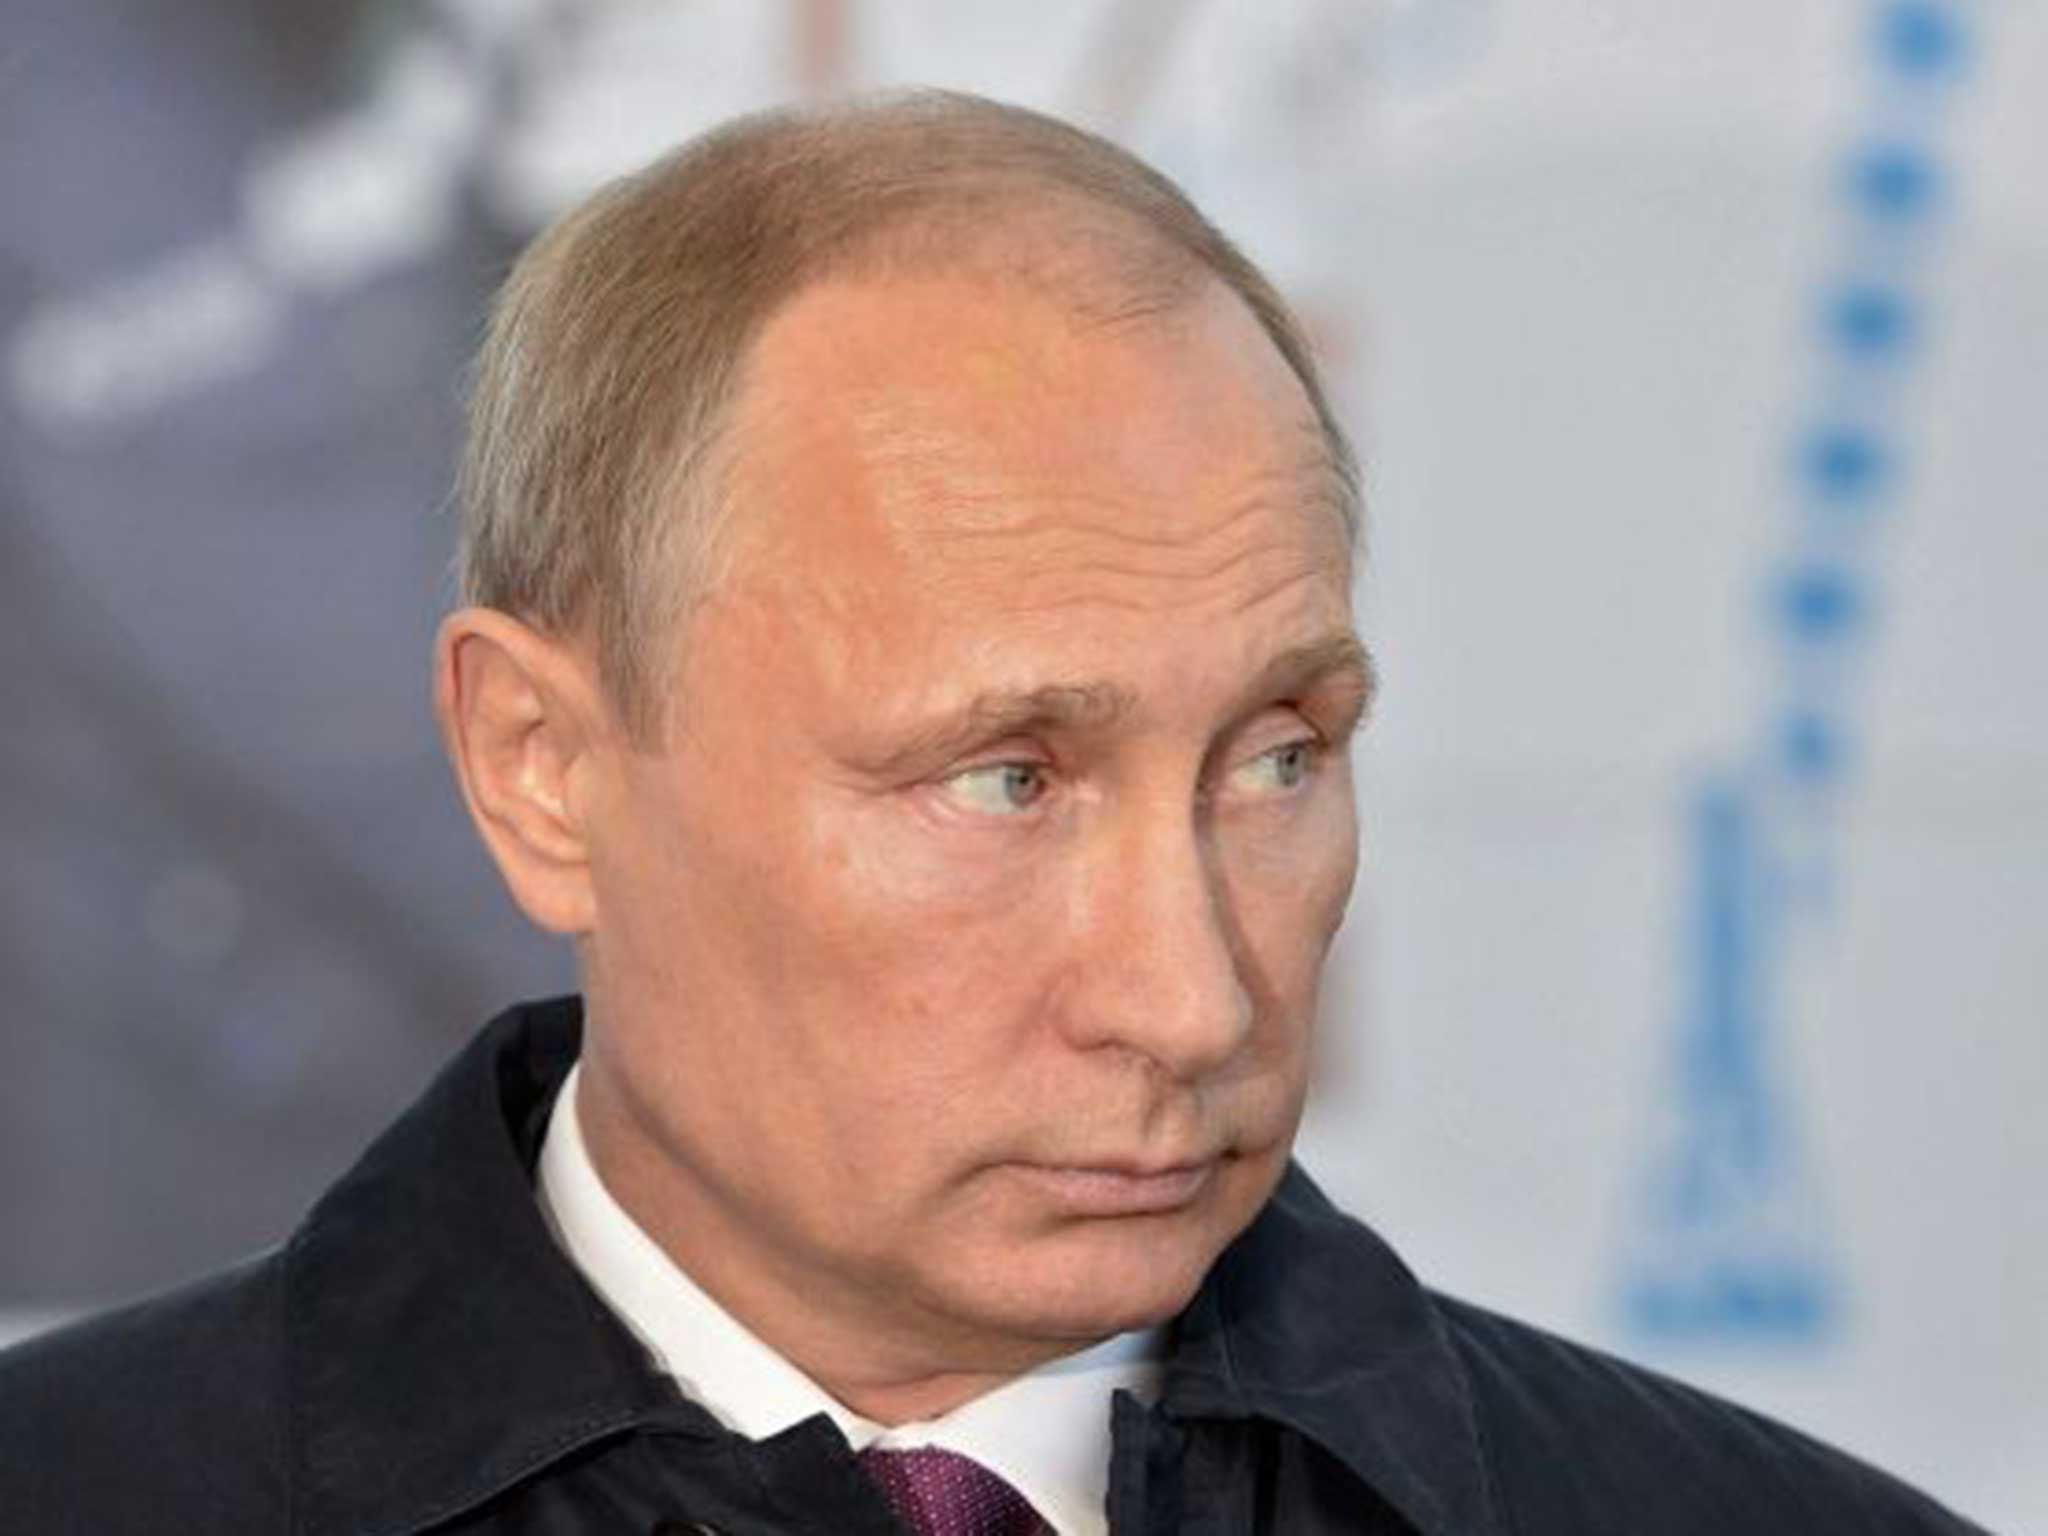 Ukraine crisis: Russian president Vladimir Putin claims he could 'take Kiev in two weeks'